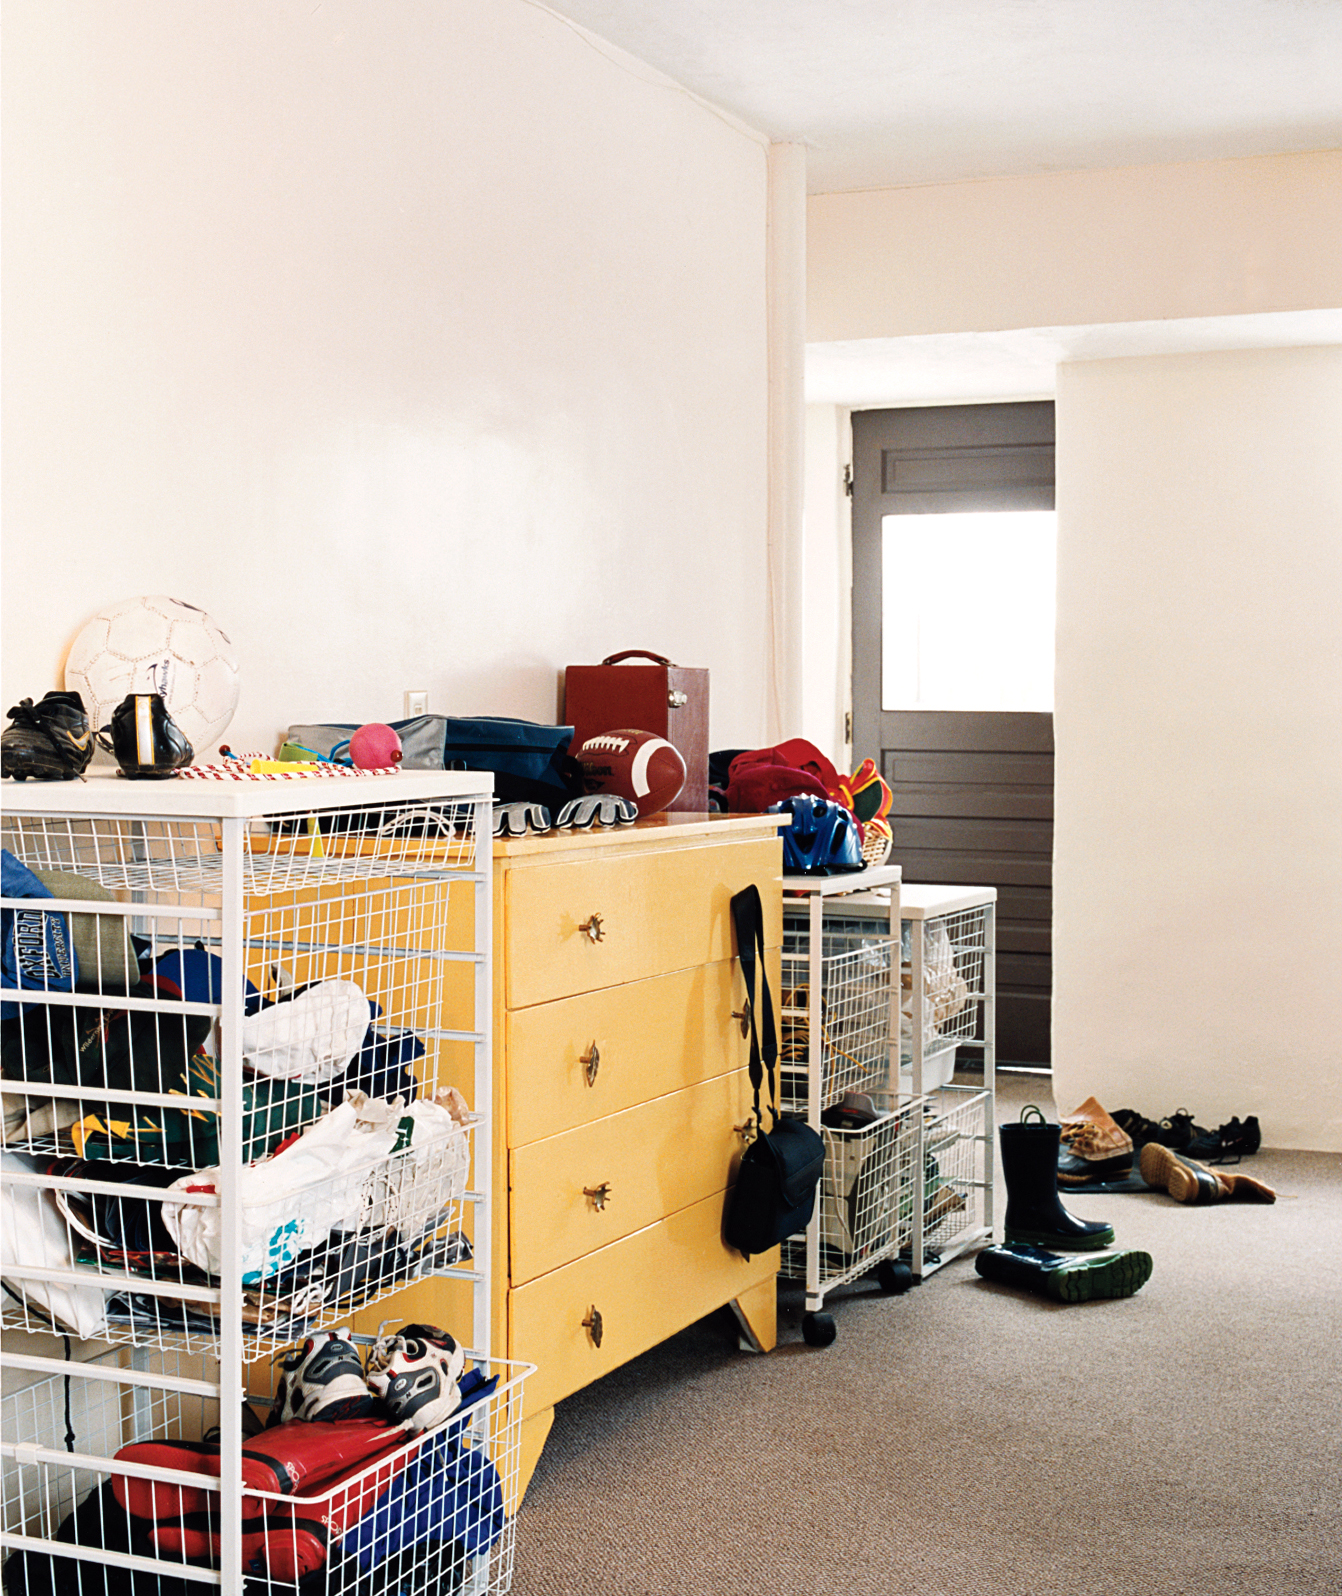 Messy Basement: 16 Before-and-After Room Makeovers